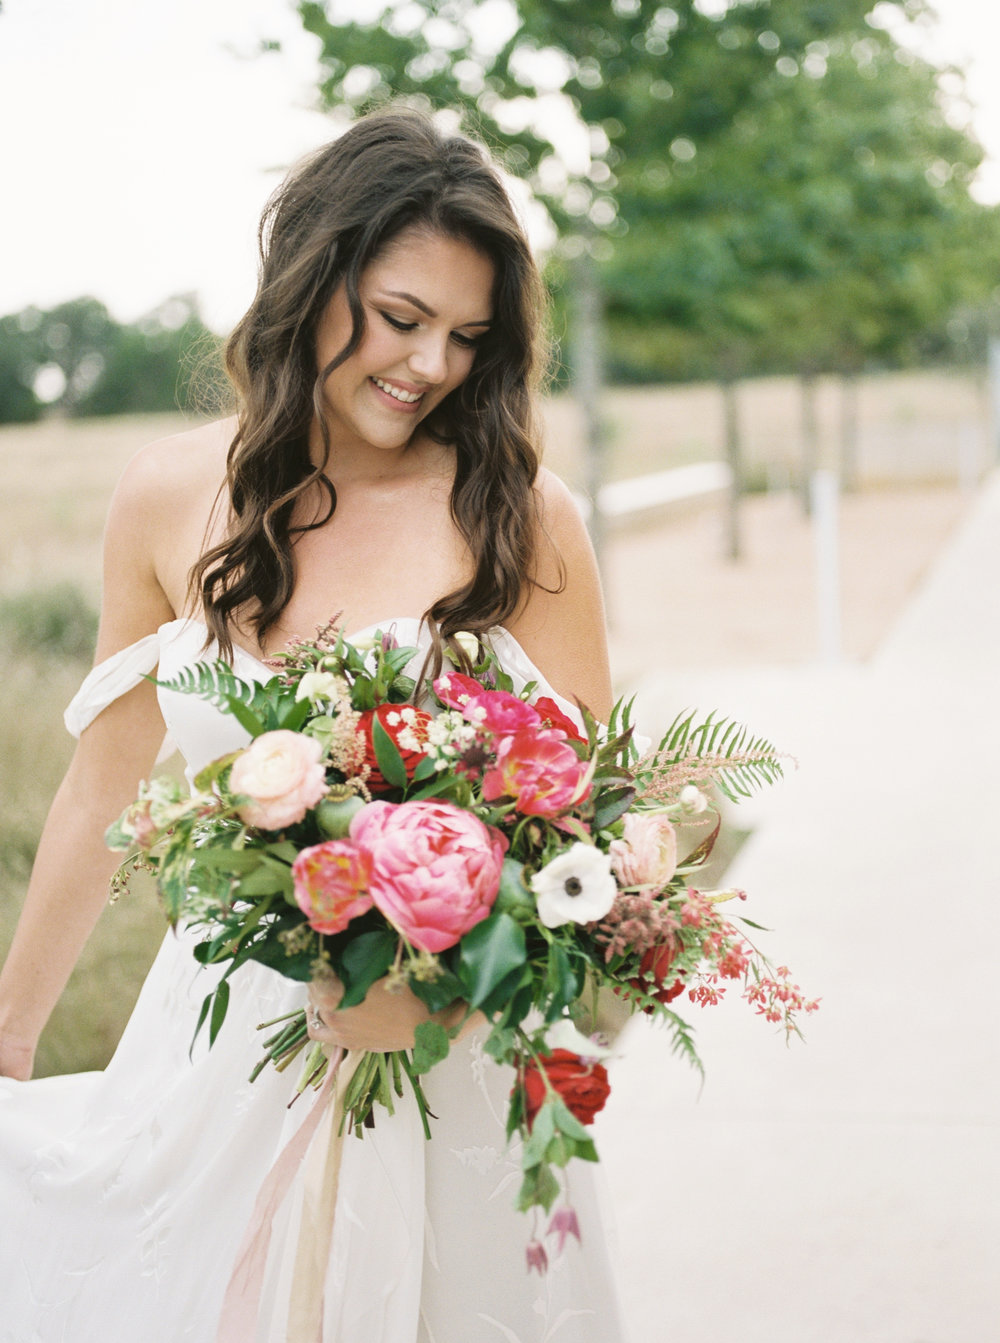 fine art wedding photographer in austin. dripping springs bridal photos